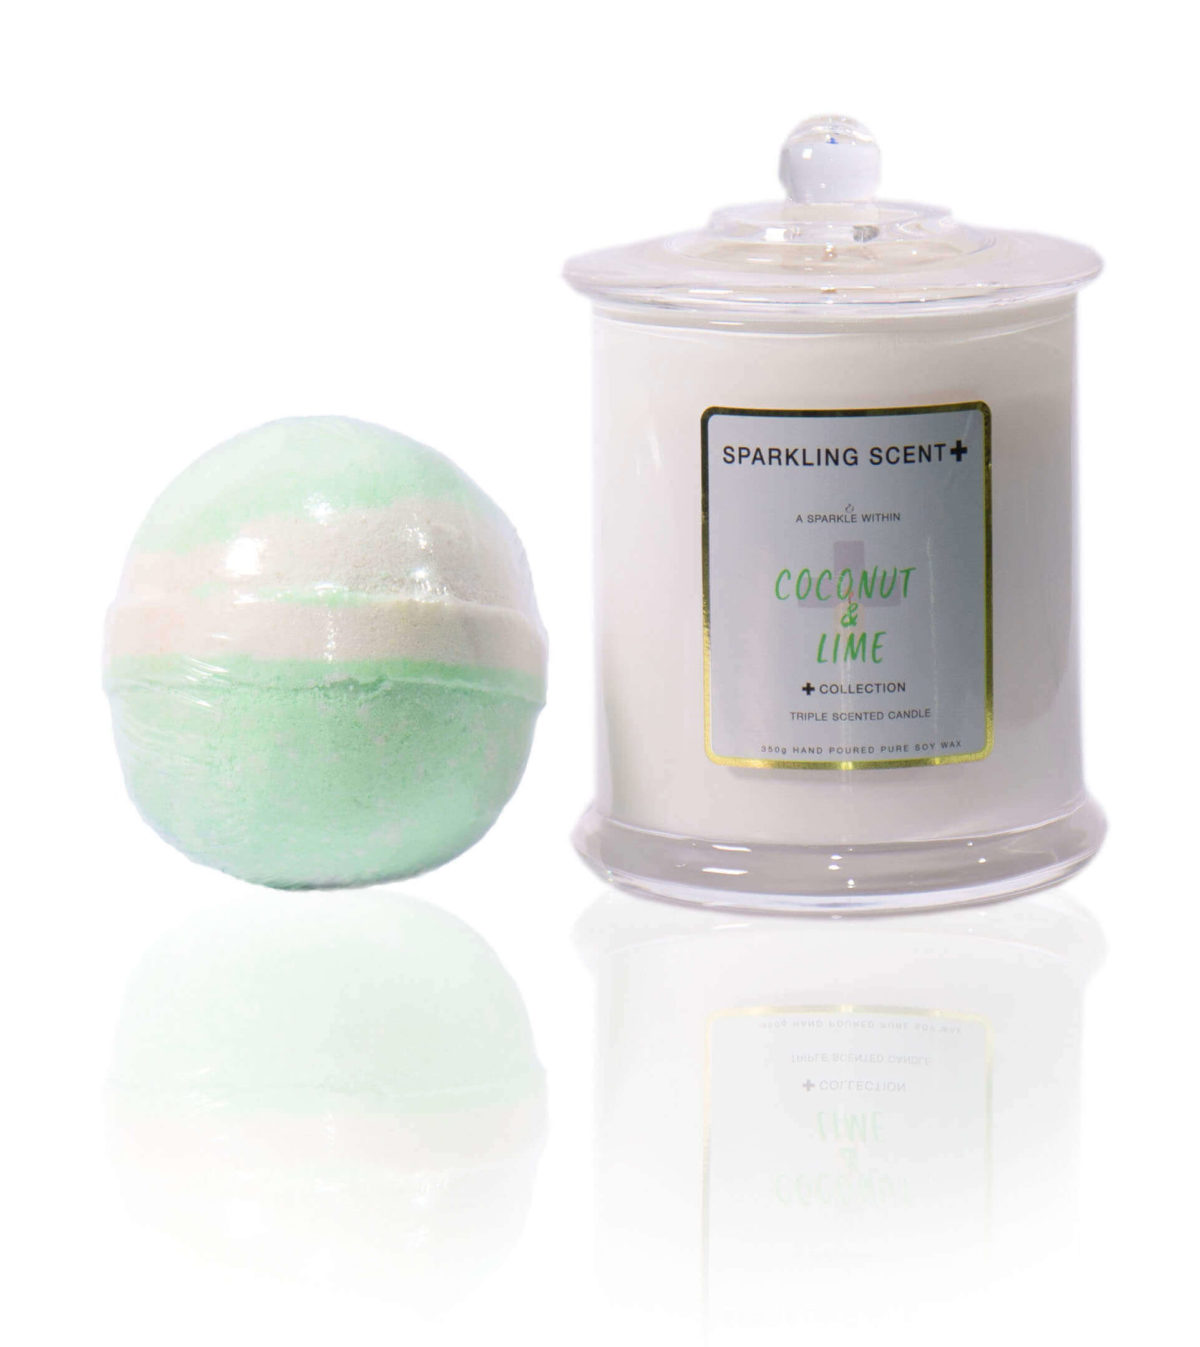 Green and cream Coconut & Lime gift set in the centre of the screen. A bright mica green Bomb bomb and a Glossy White Elegant French Gala candle.